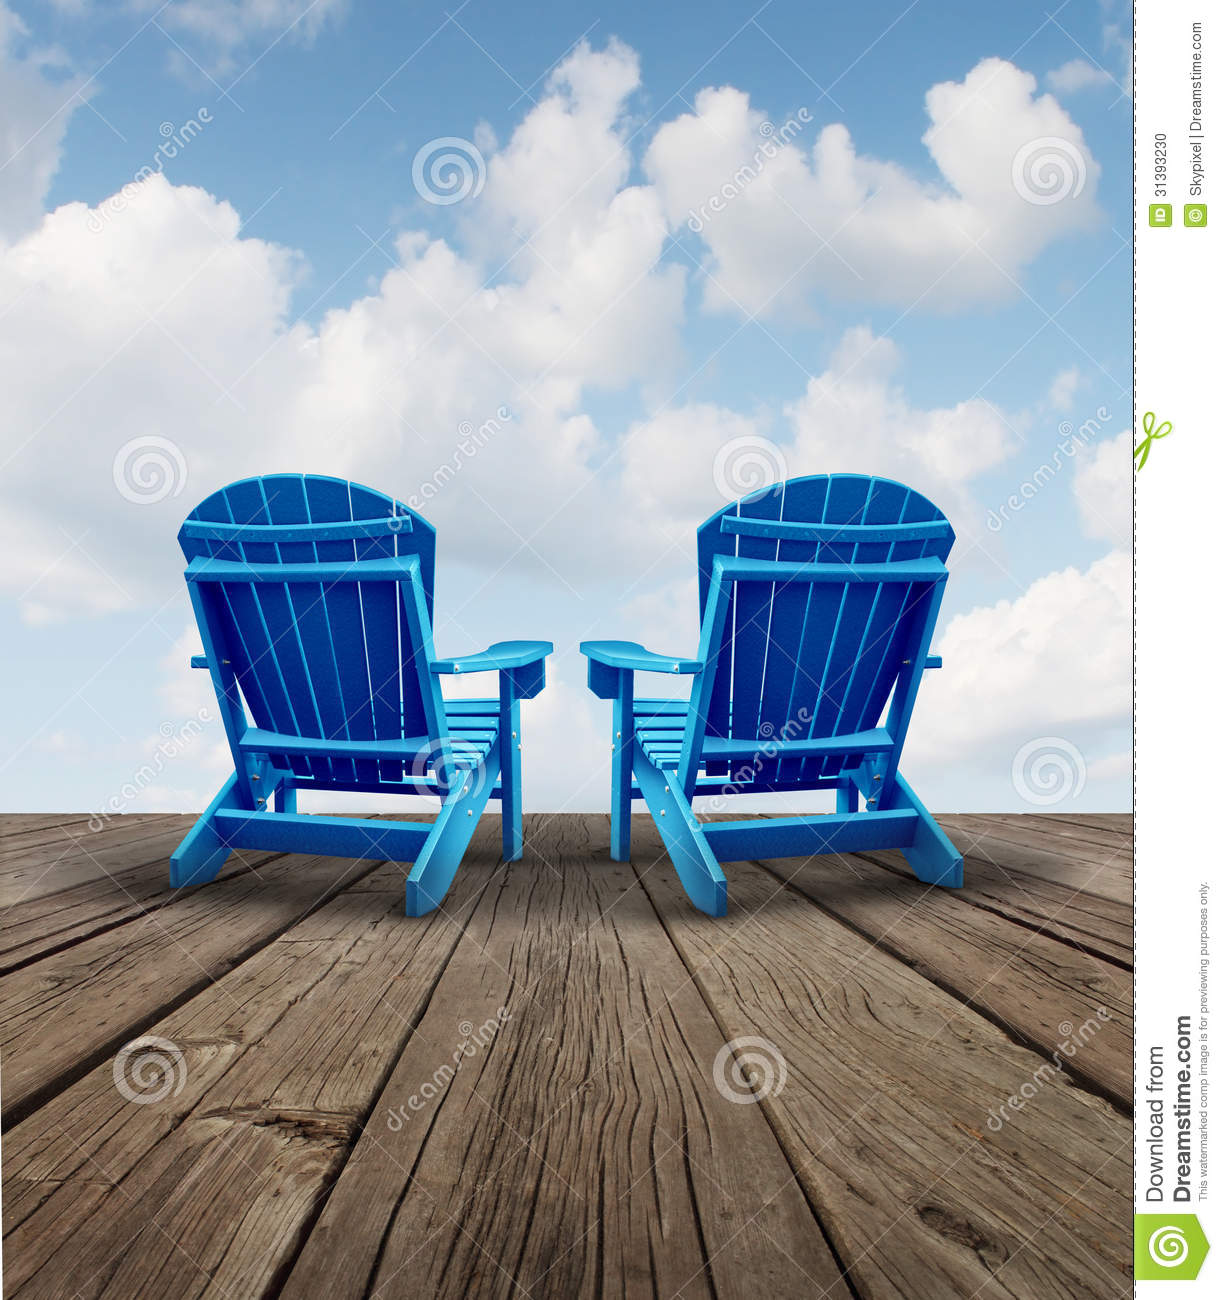 Blue Adirondack Chair Retirement Relaxation Stock Photo Image 31393230